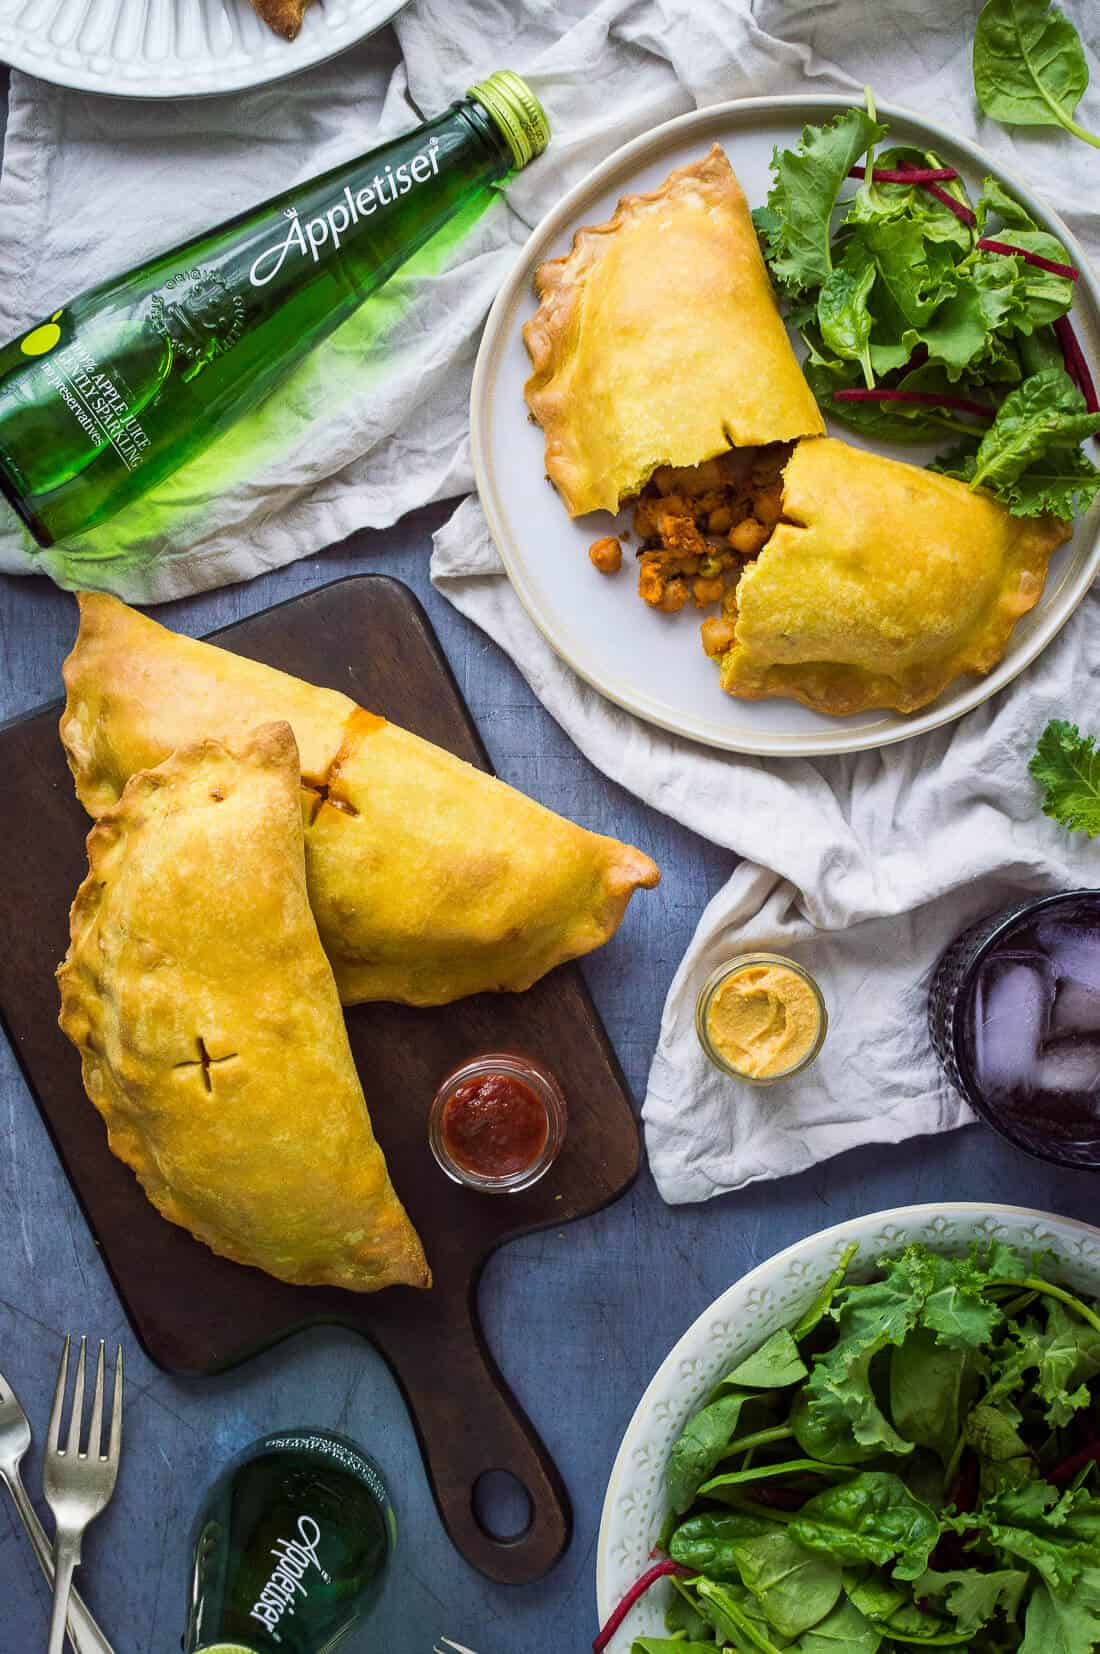 Vegan curried vegetable pasties on a grey background with salad and Appletiser.